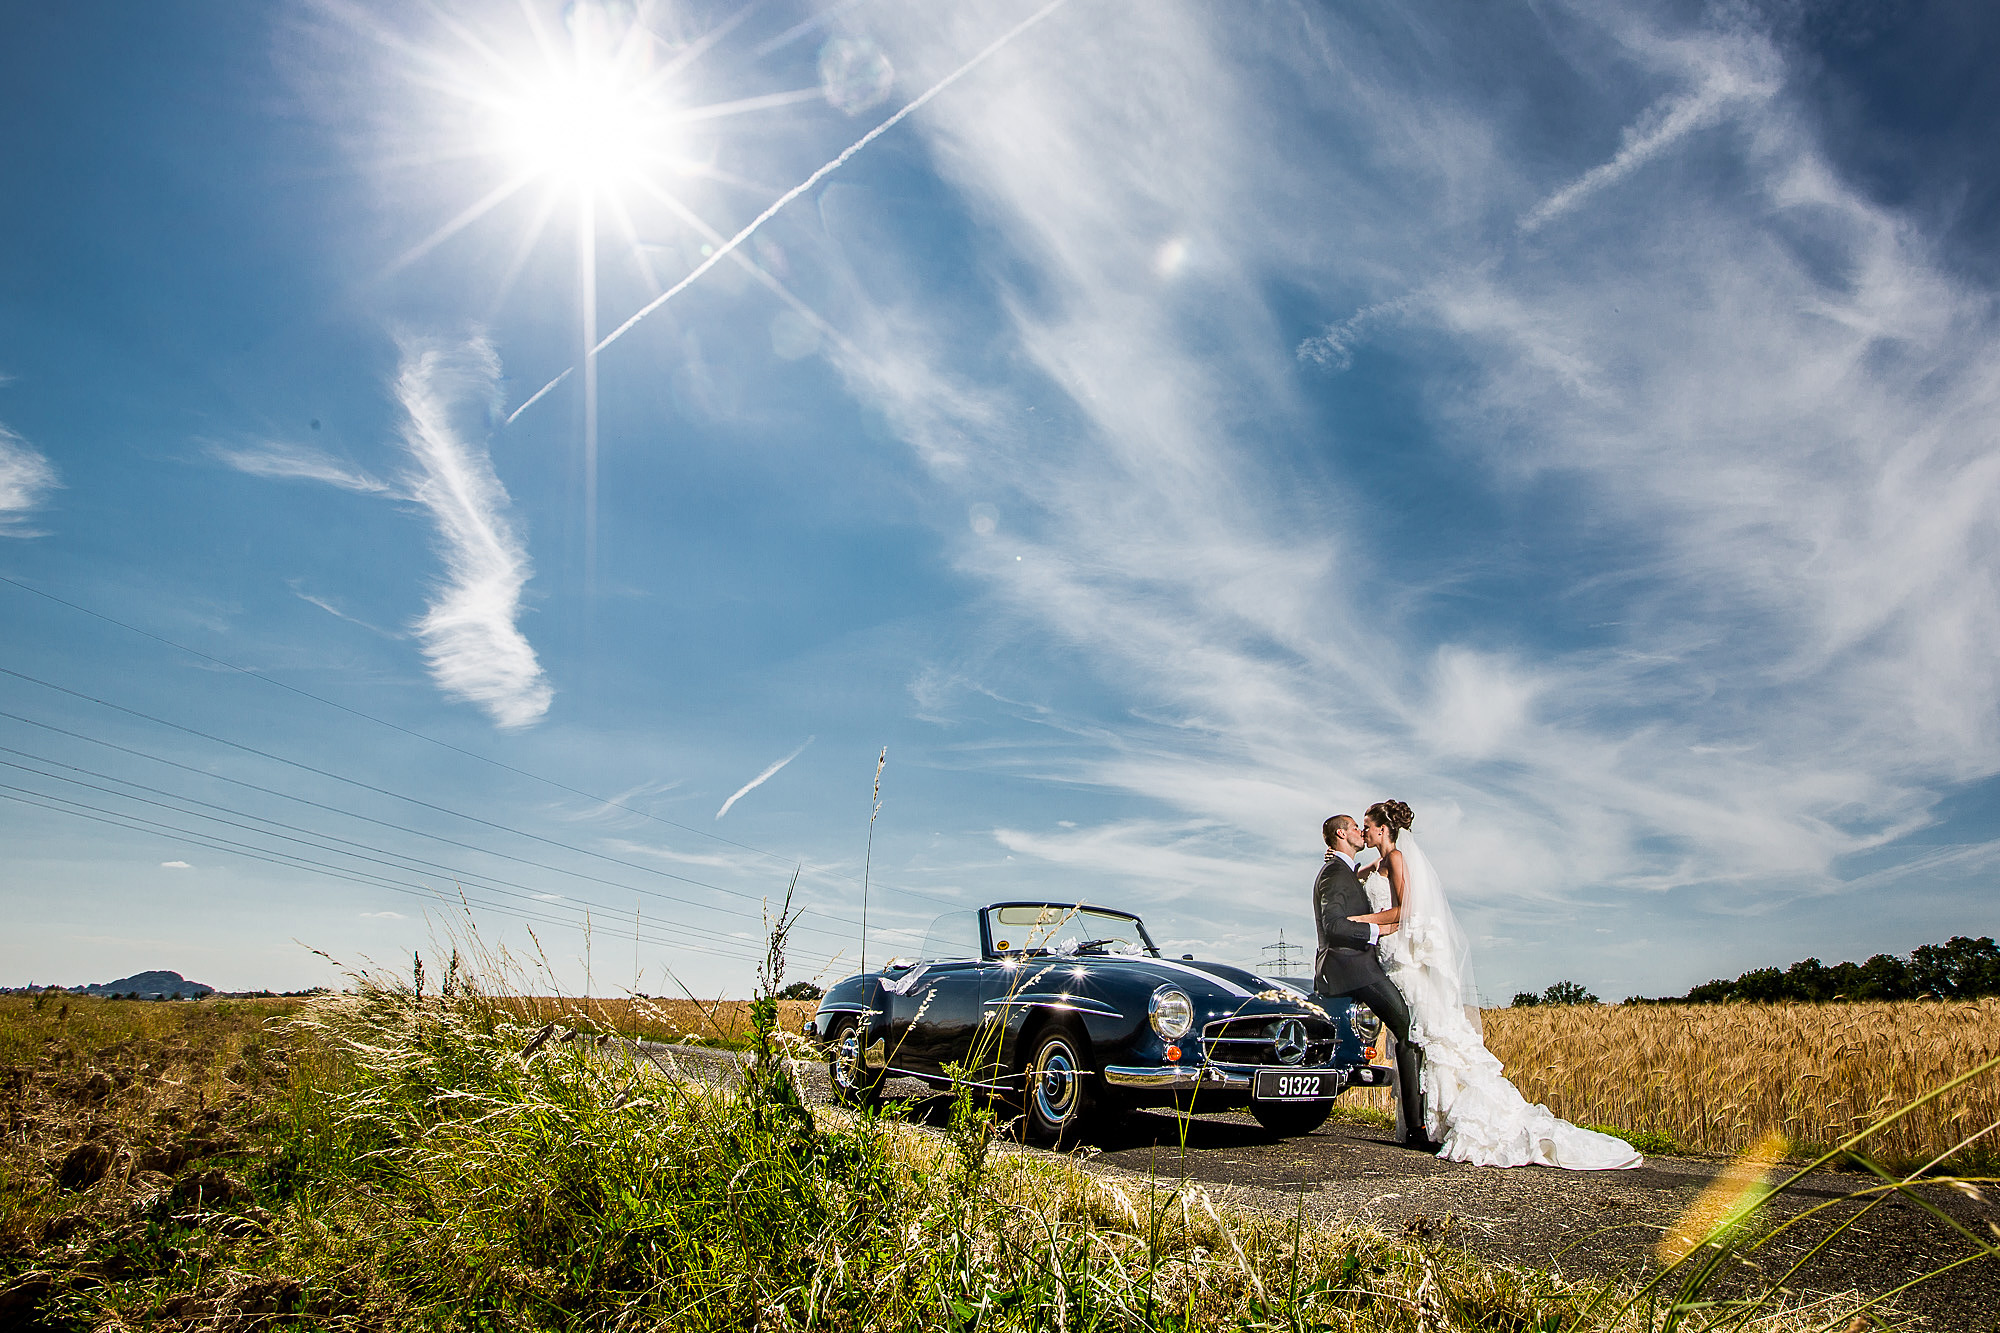 Luxemburg, Hochzeitsauto, Mercedes, Portrait, Traumhochzeit, Traumwetter, Kornfeld, Kiss, Bride, Weddingdress, Dreamdress, justwhite, groom, suit, excitement, love, kisses, Hochzeitsfoto